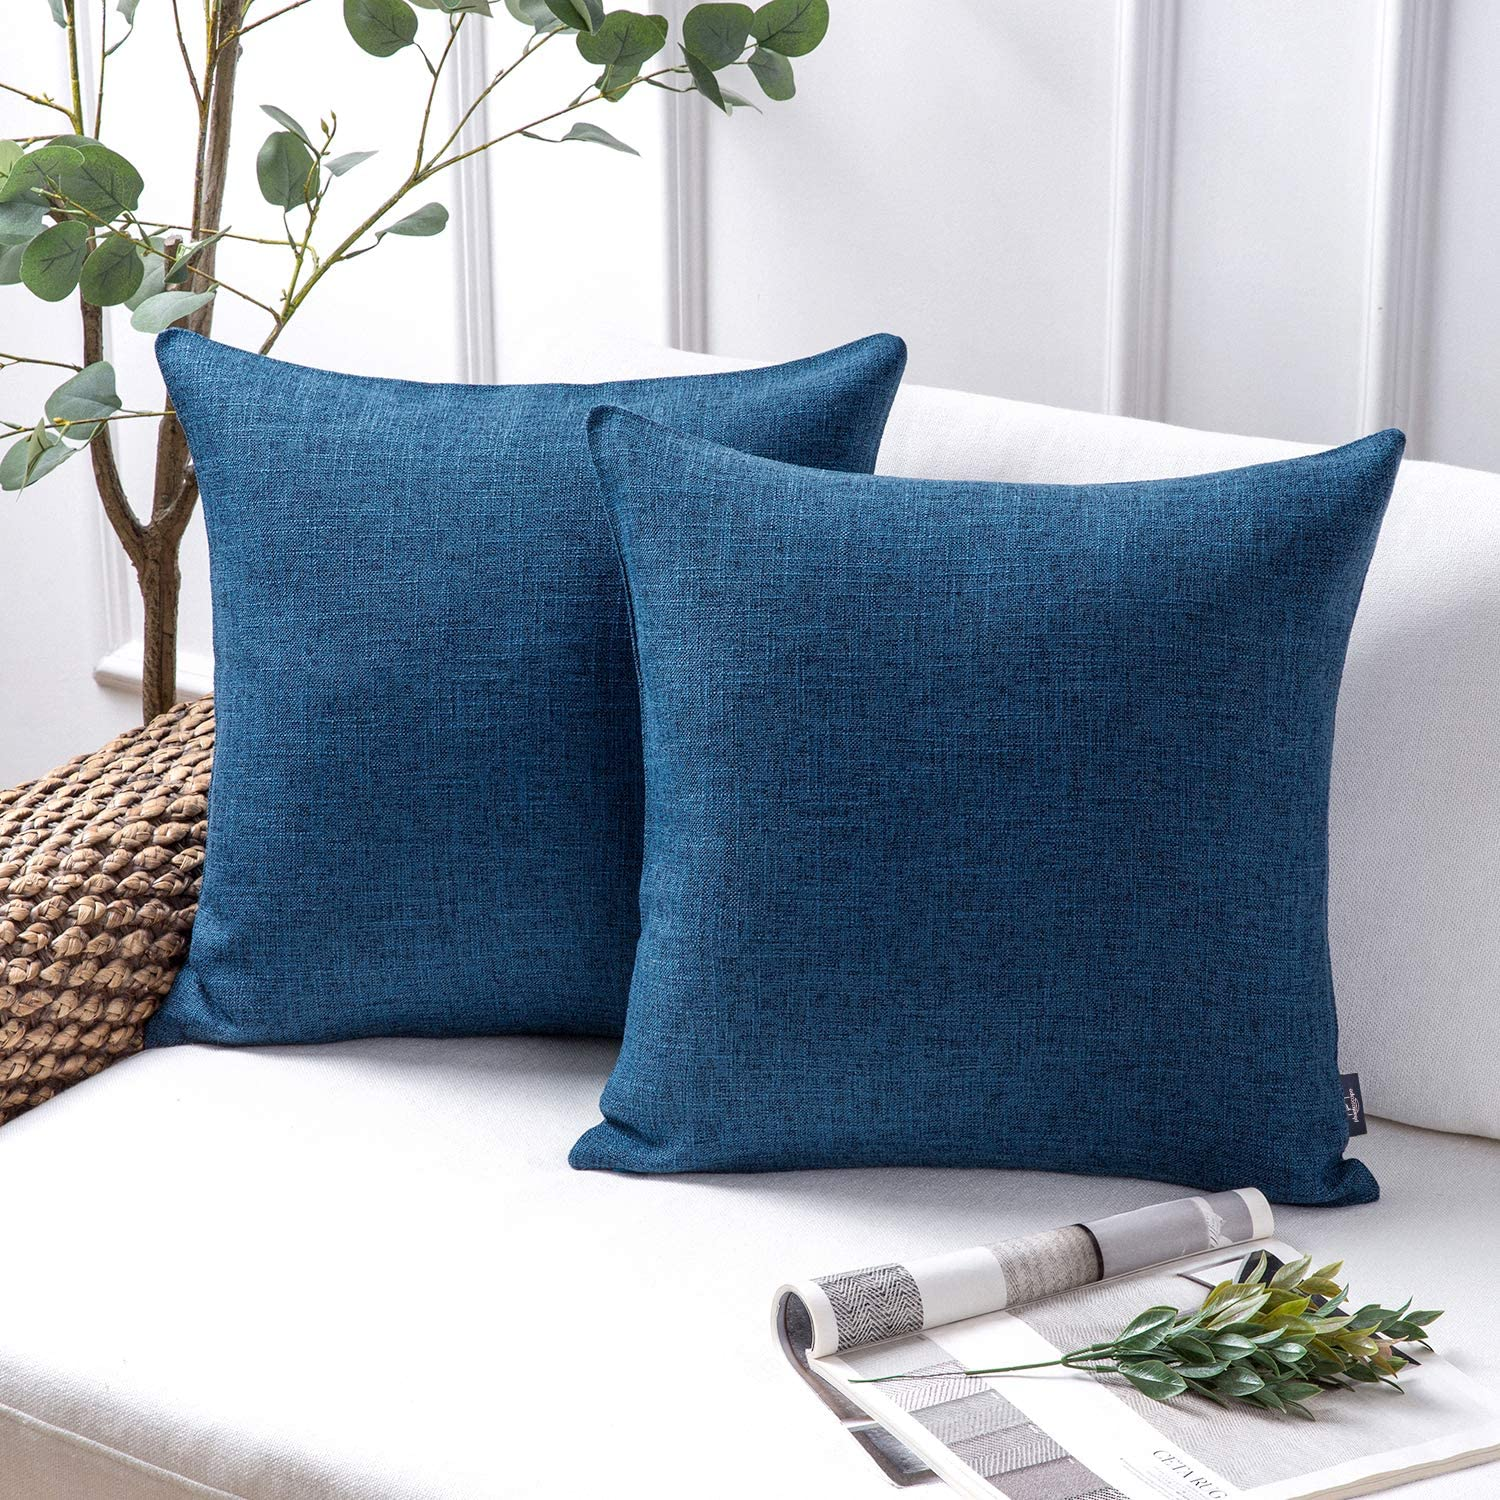 Phantoscope Throw Pillow Cover Textured Faux Linen Series Decorative Cushion Covers for Home Decor Sofa Pack of 2, Navy Blue 18 x 18 inches 45 x 45 cm